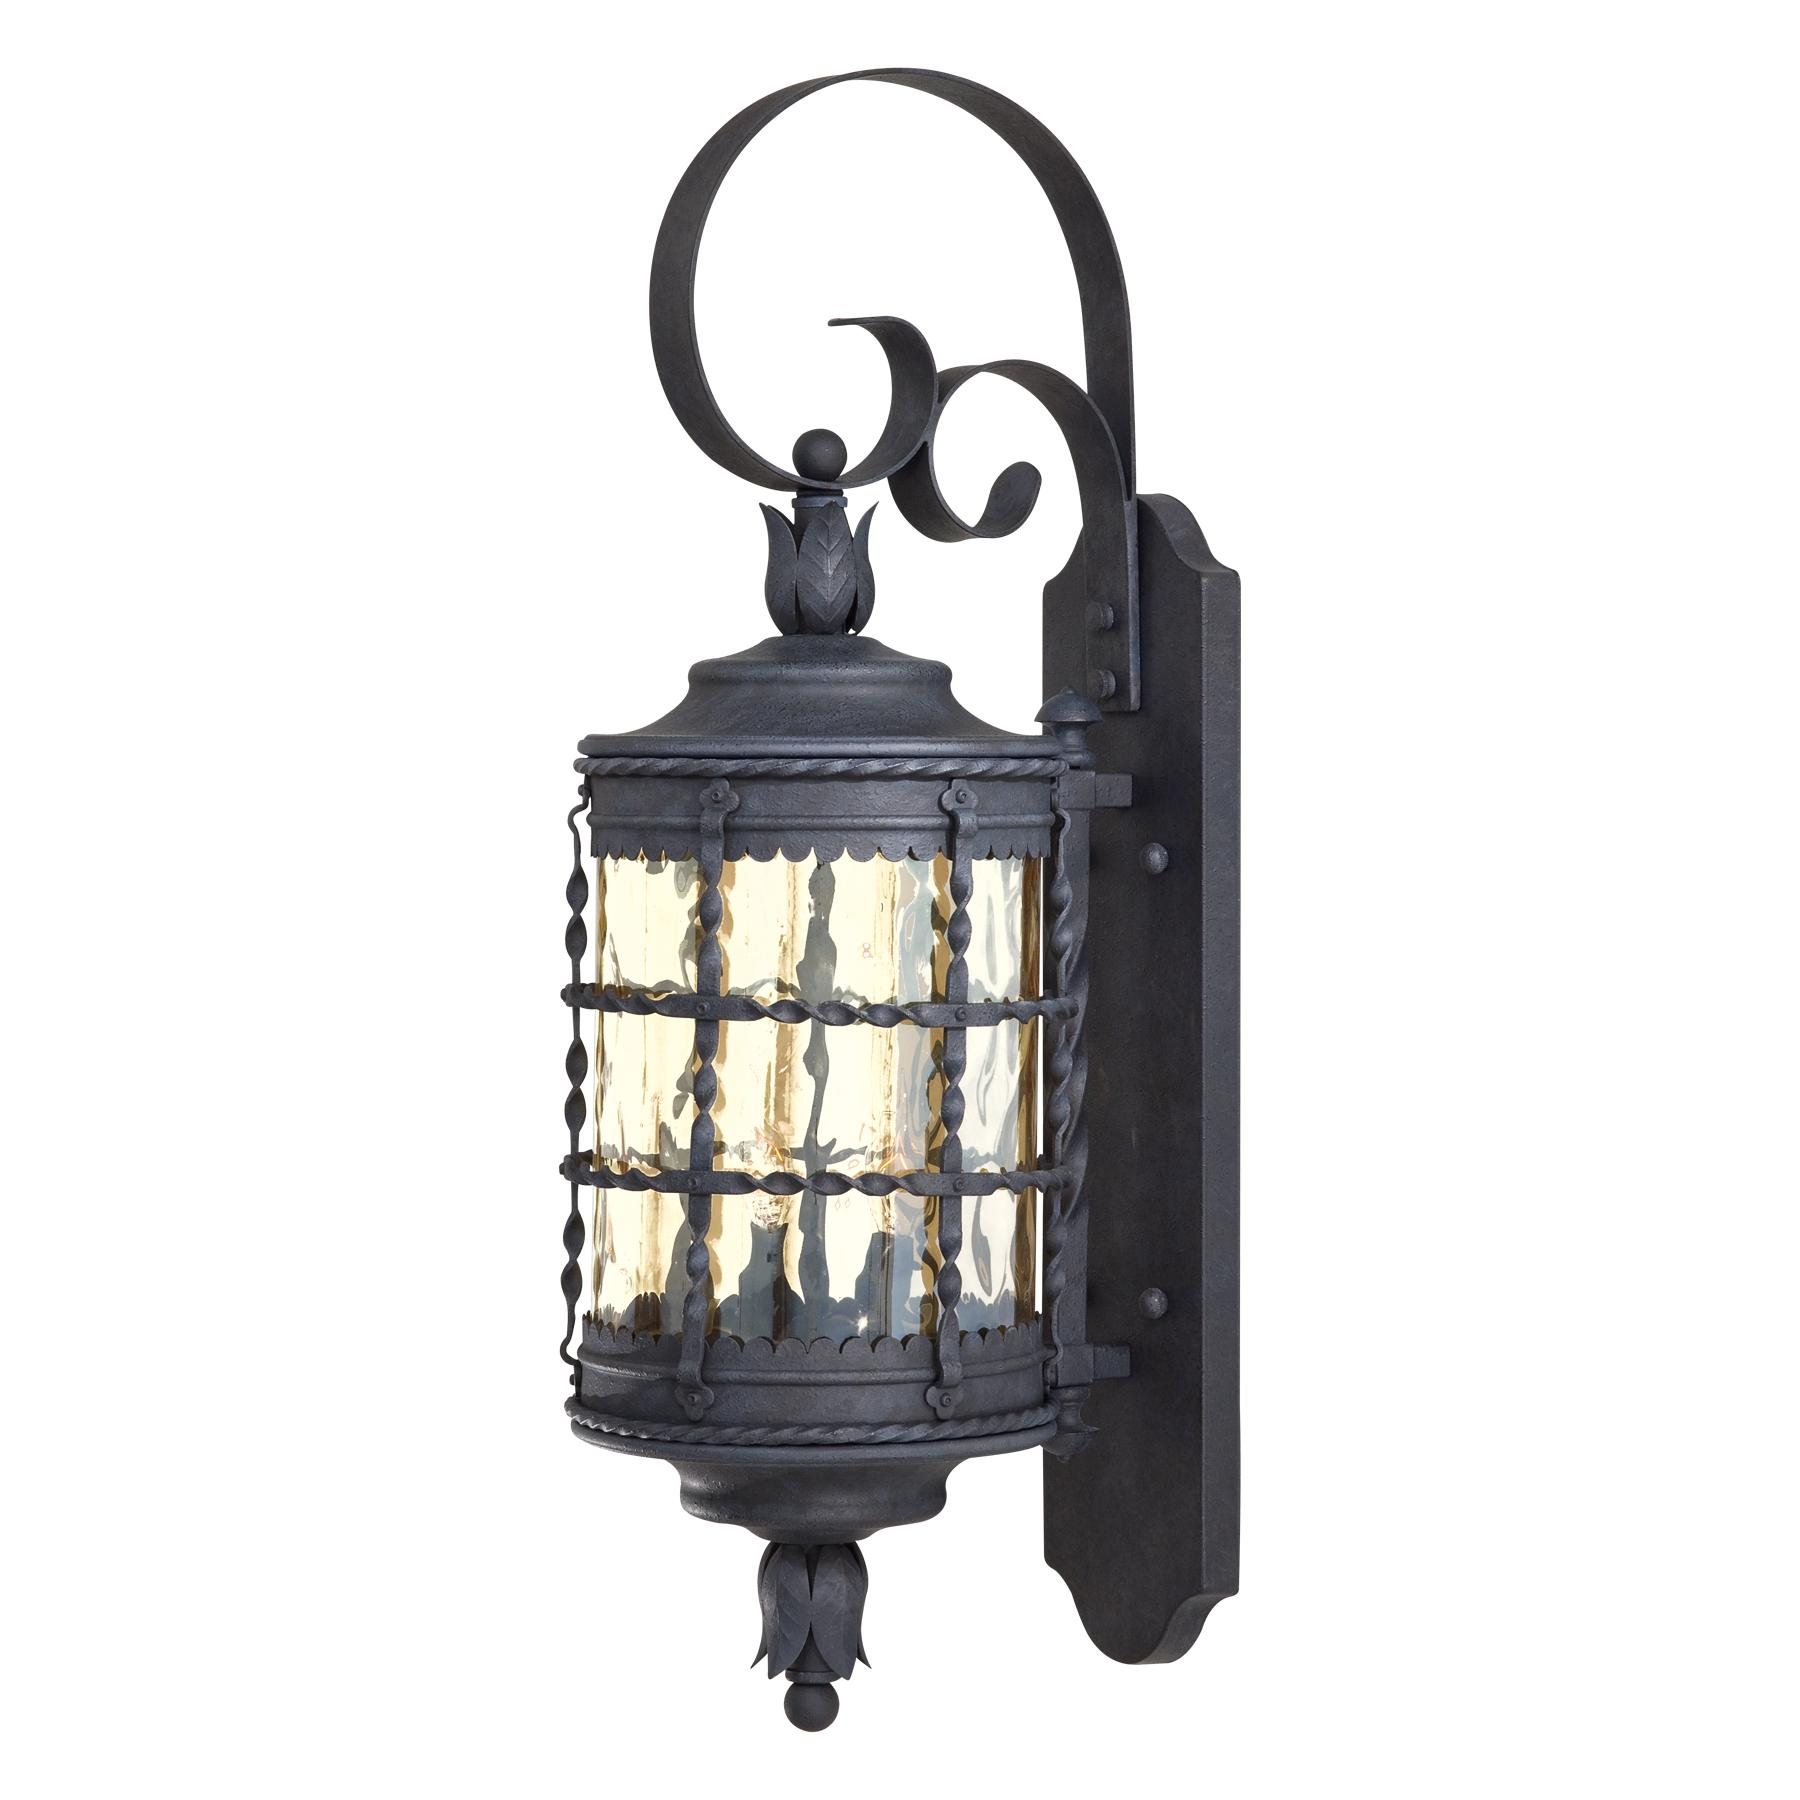 Mallorca hanging outdoor wall sconce by minka lavery 8881 a39 aloadofball Gallery